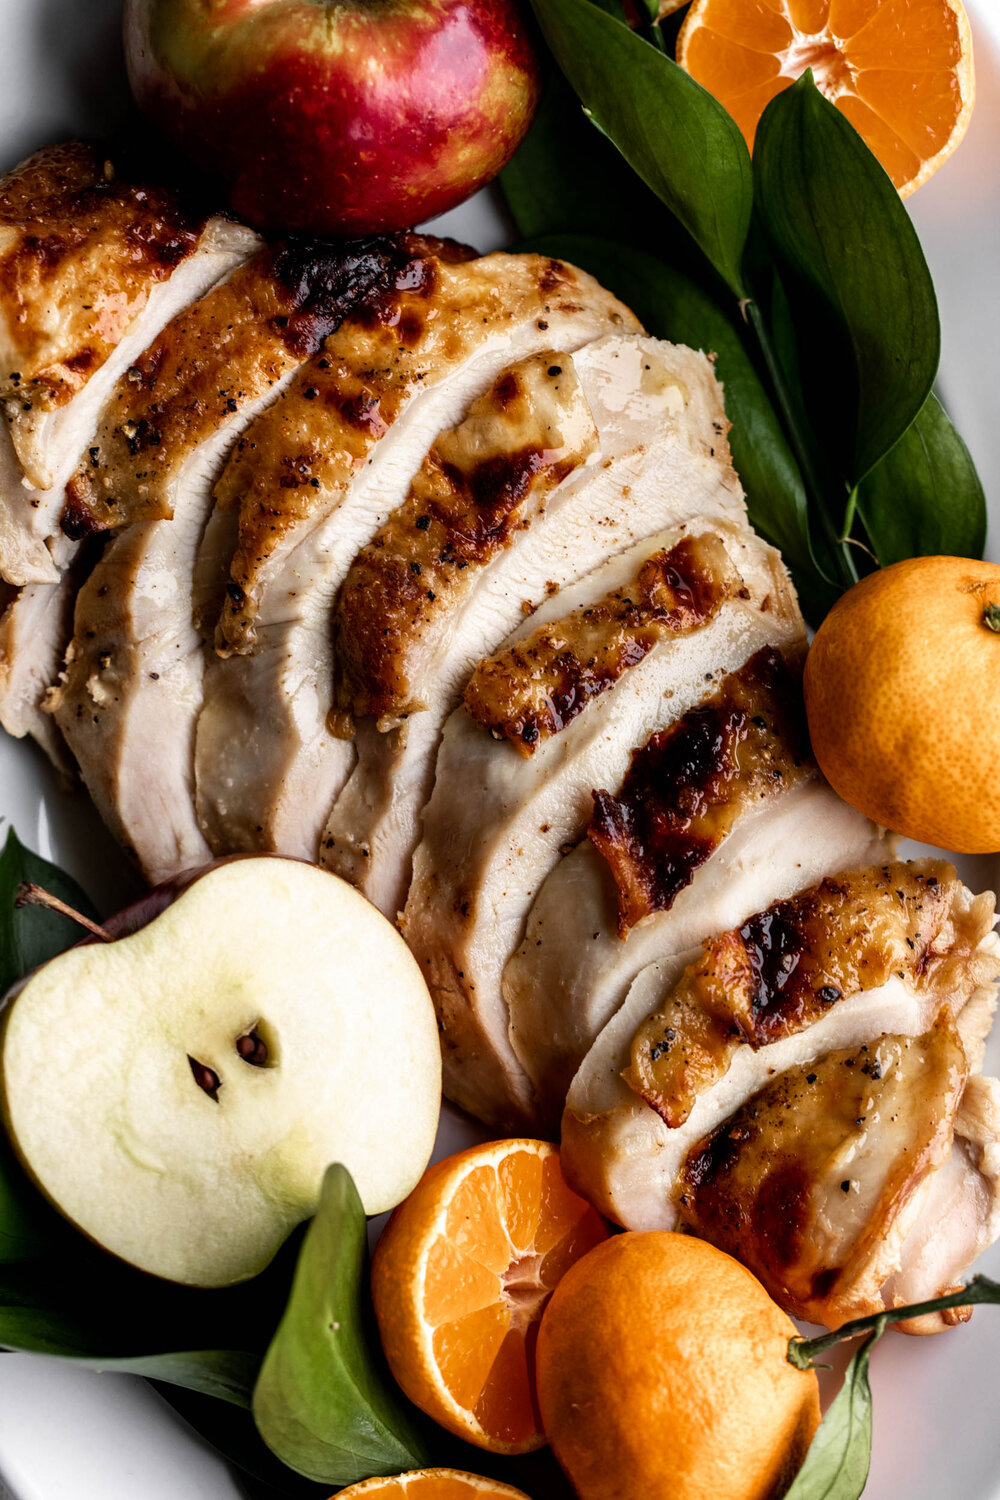 Apple Cider Brined Turkey Breast for Two-12.jpg